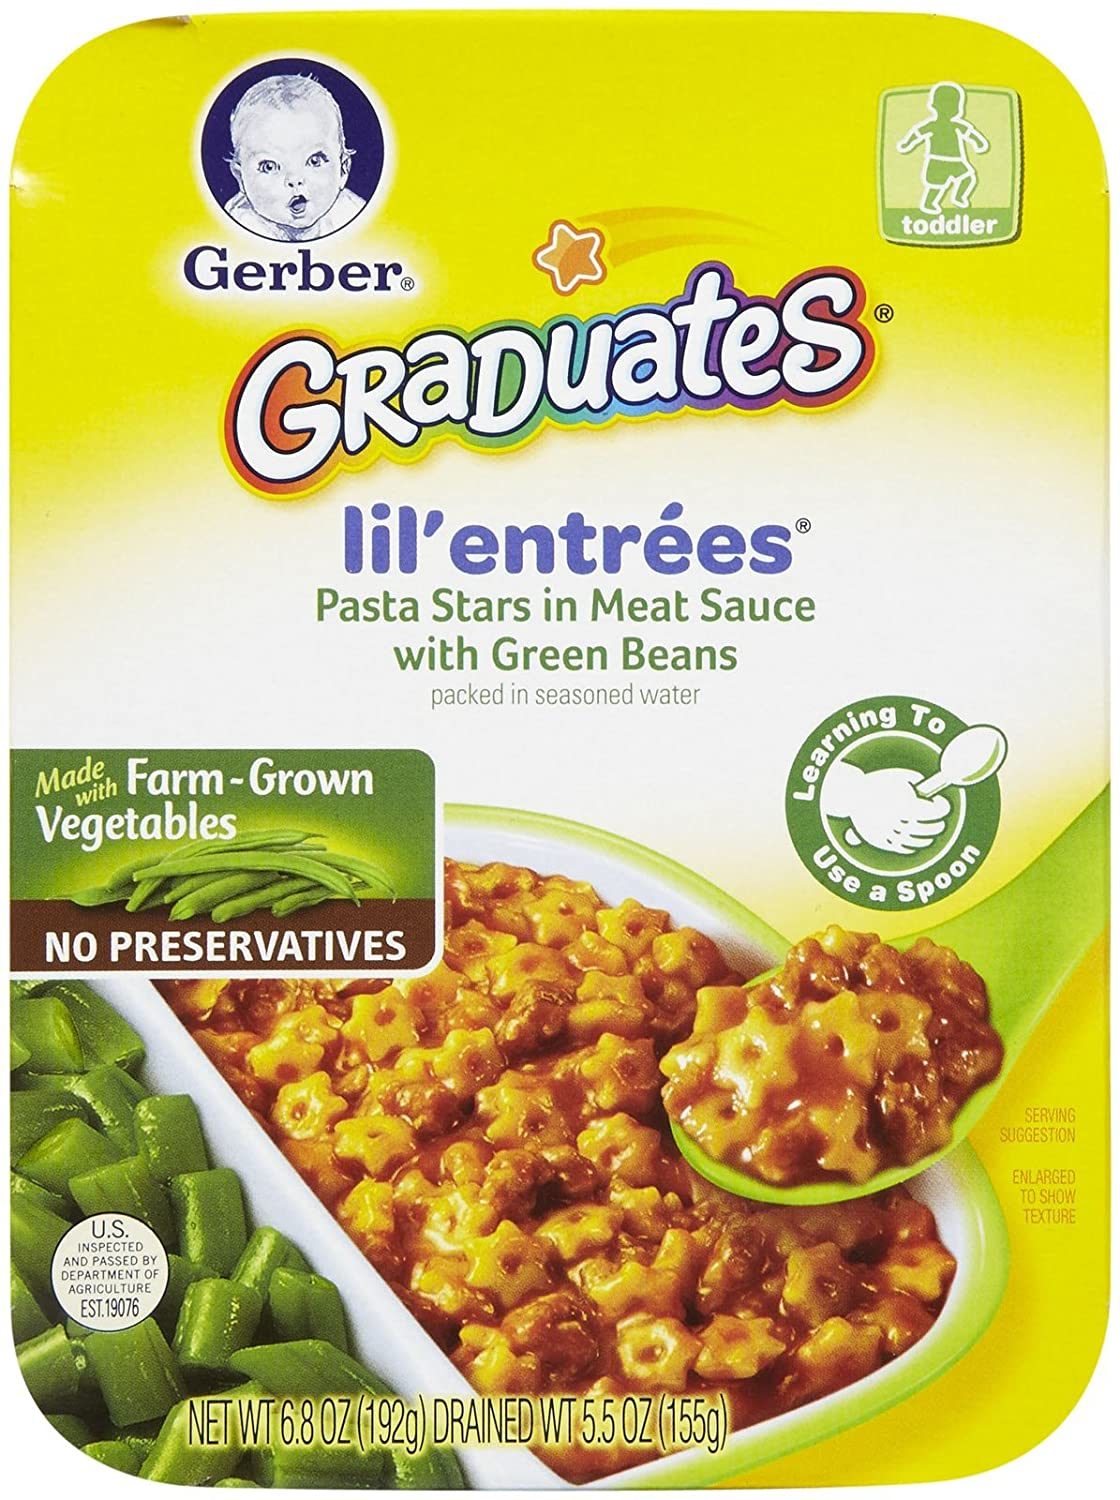 Gerber Graduates Lil' Entrees - Pasta Stars in Meat Sauce with Green Beans - 6.8 oz - 3 pk